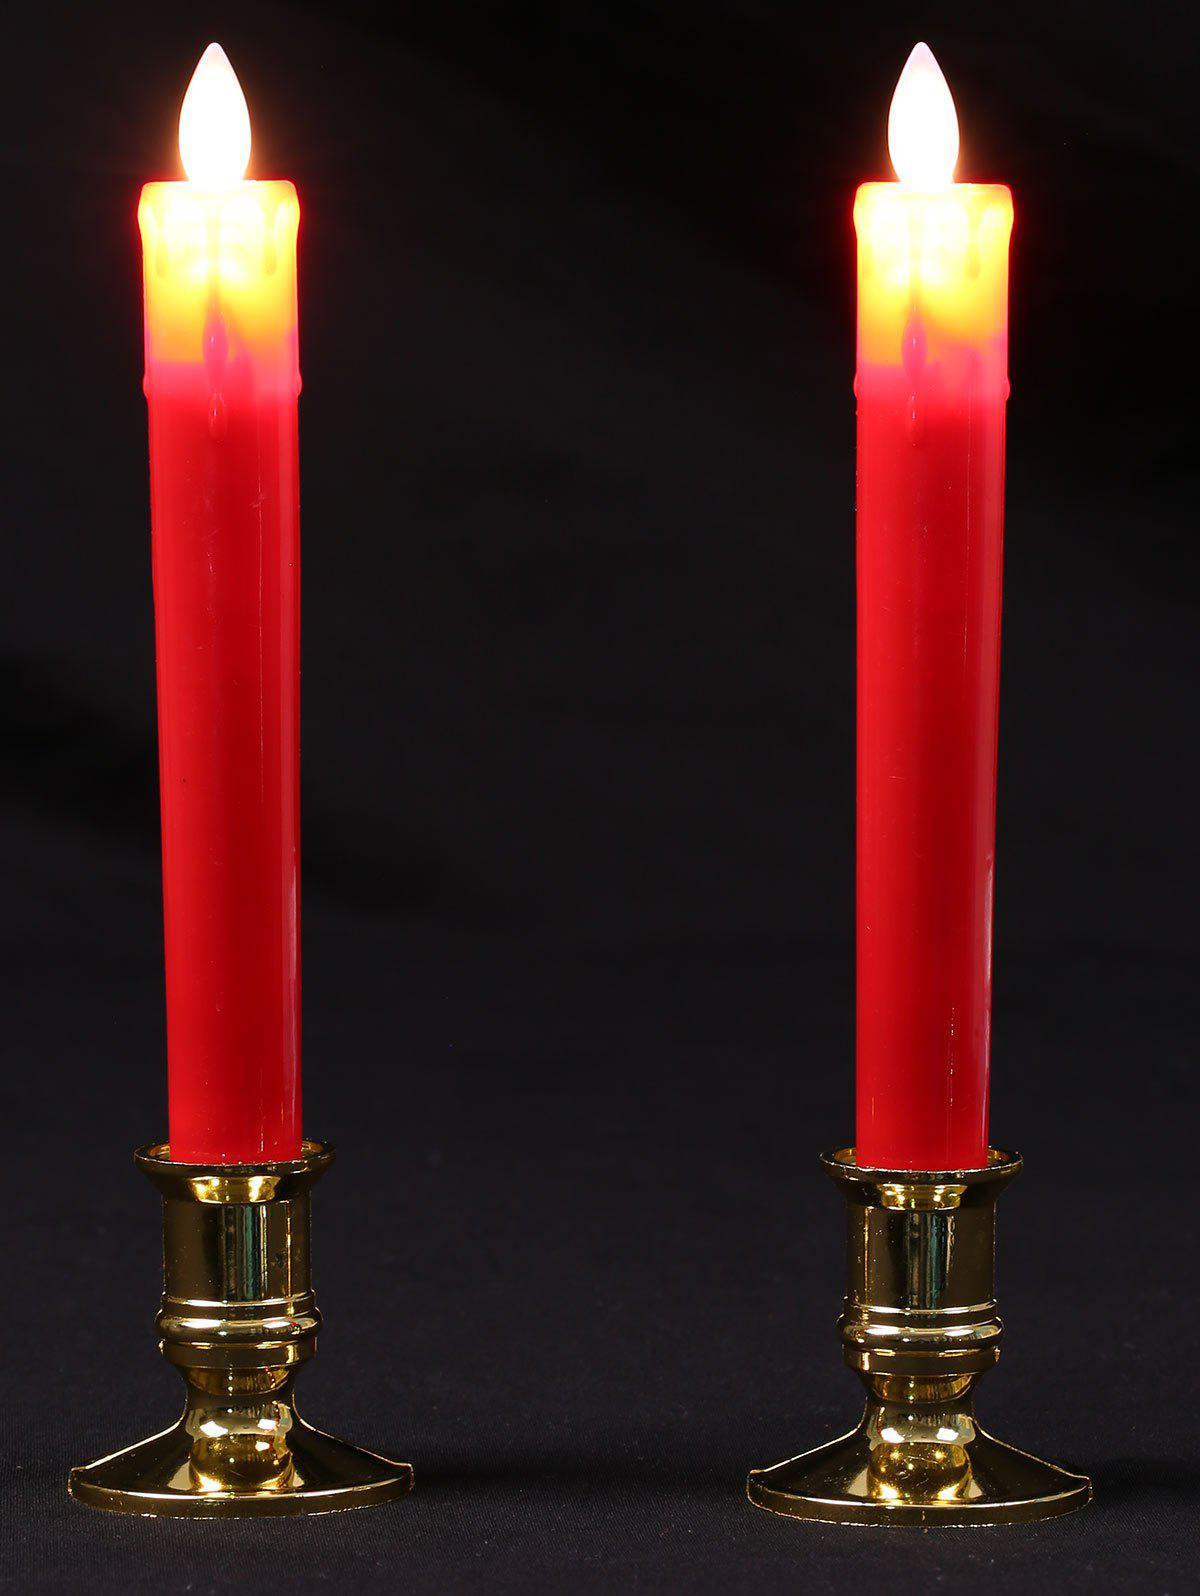 LED Swing Electrnic Plastic Pillar 2PCS Candles Night LightHOME<br><br>Color: RED; Candle Type: Pillar; Candle Feature: Unscented; Style: Modern; Material: Plastic; Weight: 0.1120kg; Package Contents: 2 x Candle;